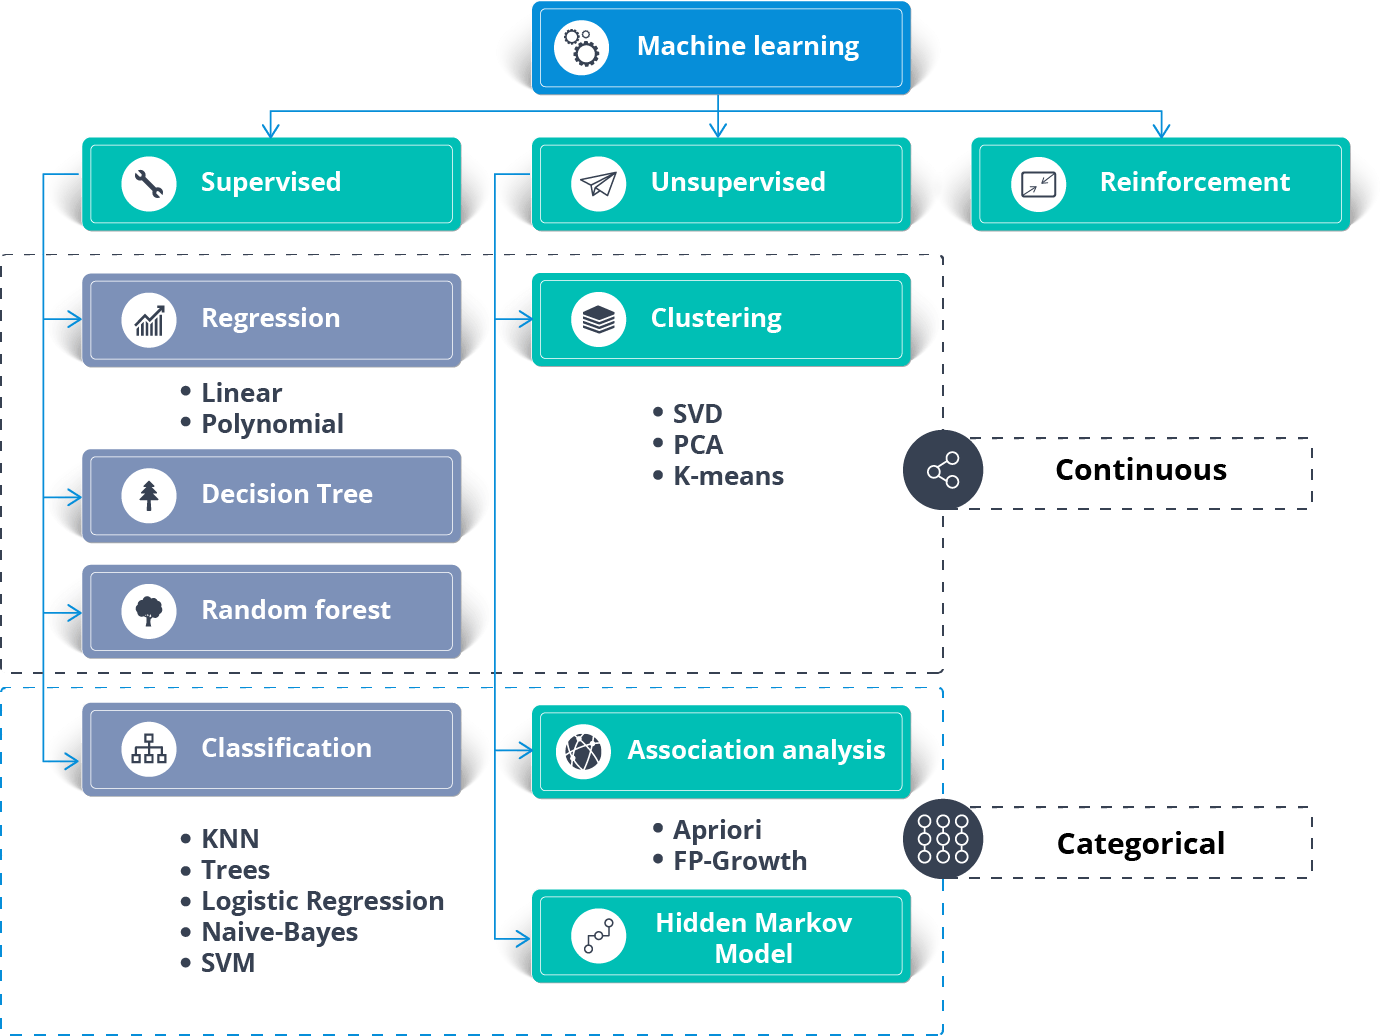 The image is displaying the types of machine learning models with various machine learning algorithms